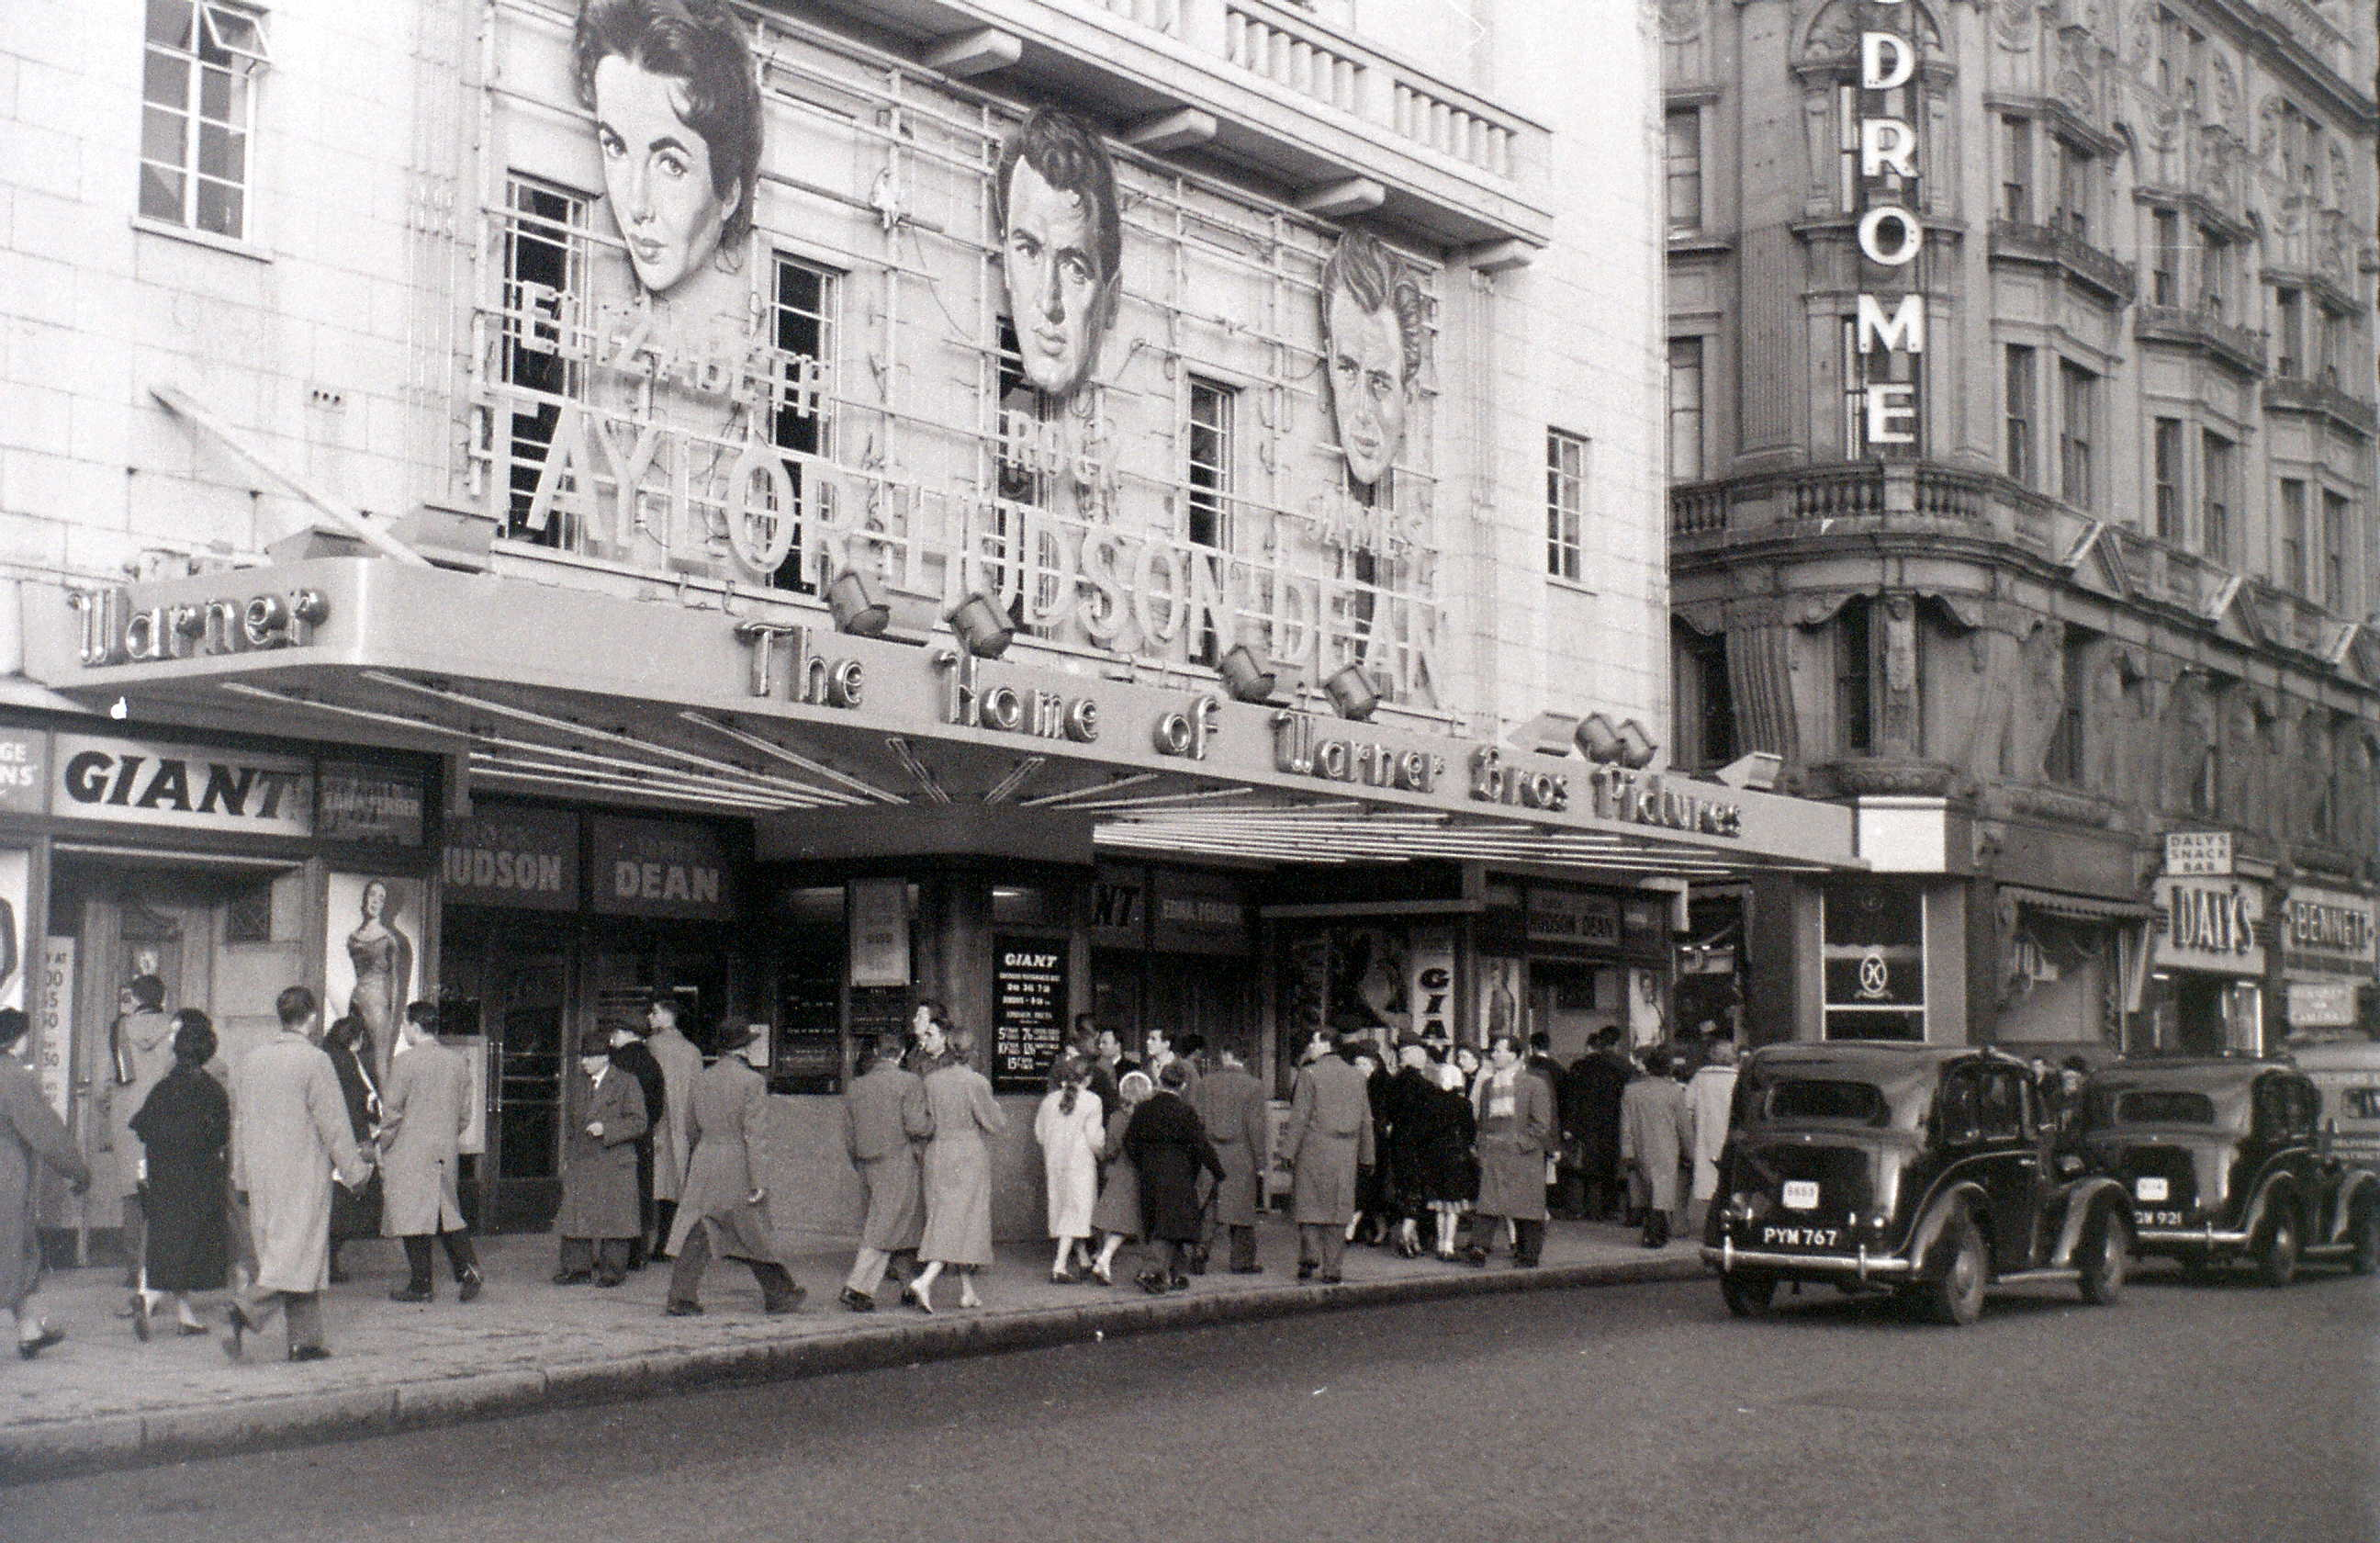 Warner Cinema, Cranbourn Street, London, 3 January 1957.